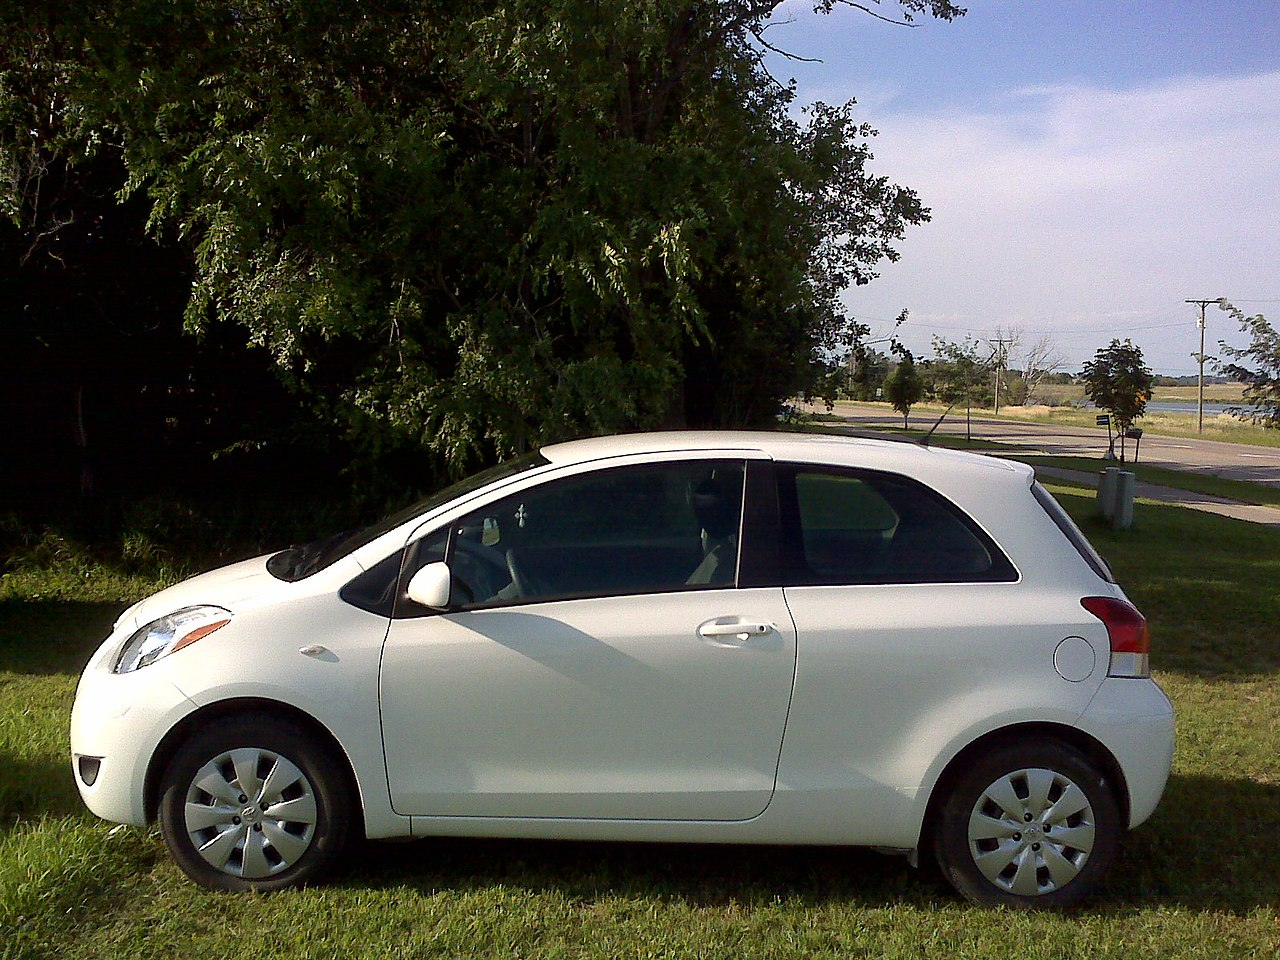 File:2010 2 Door Toyota Yaris